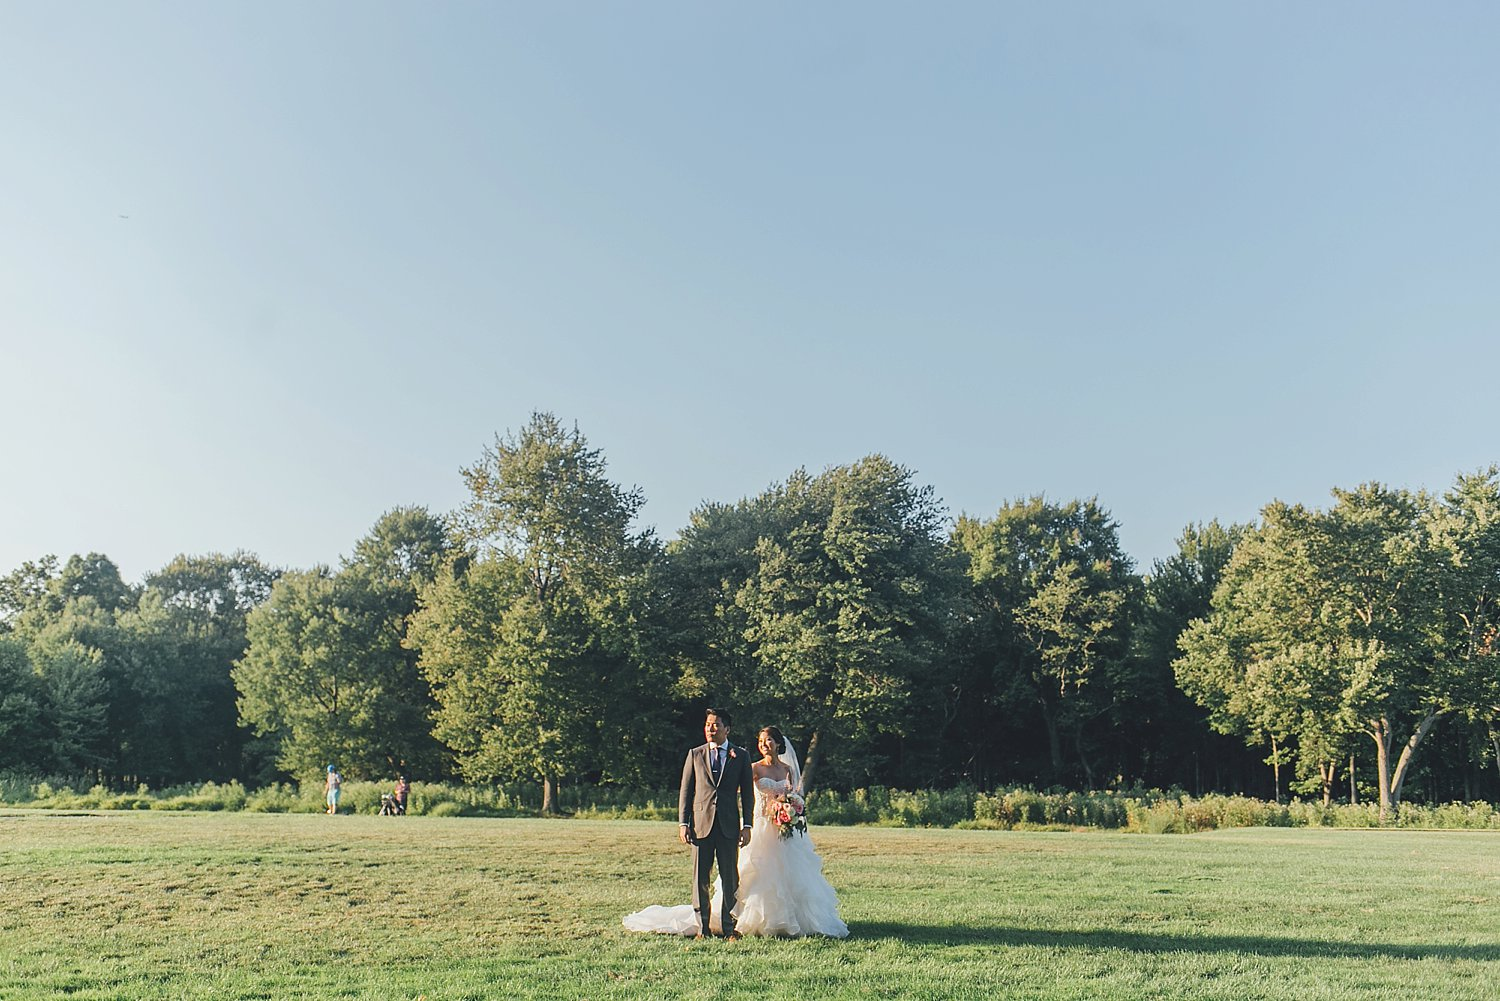 nyc-wedding-photography-nj-tri-state-cinematography-intothestory-by-moo-jae_0313.jpg